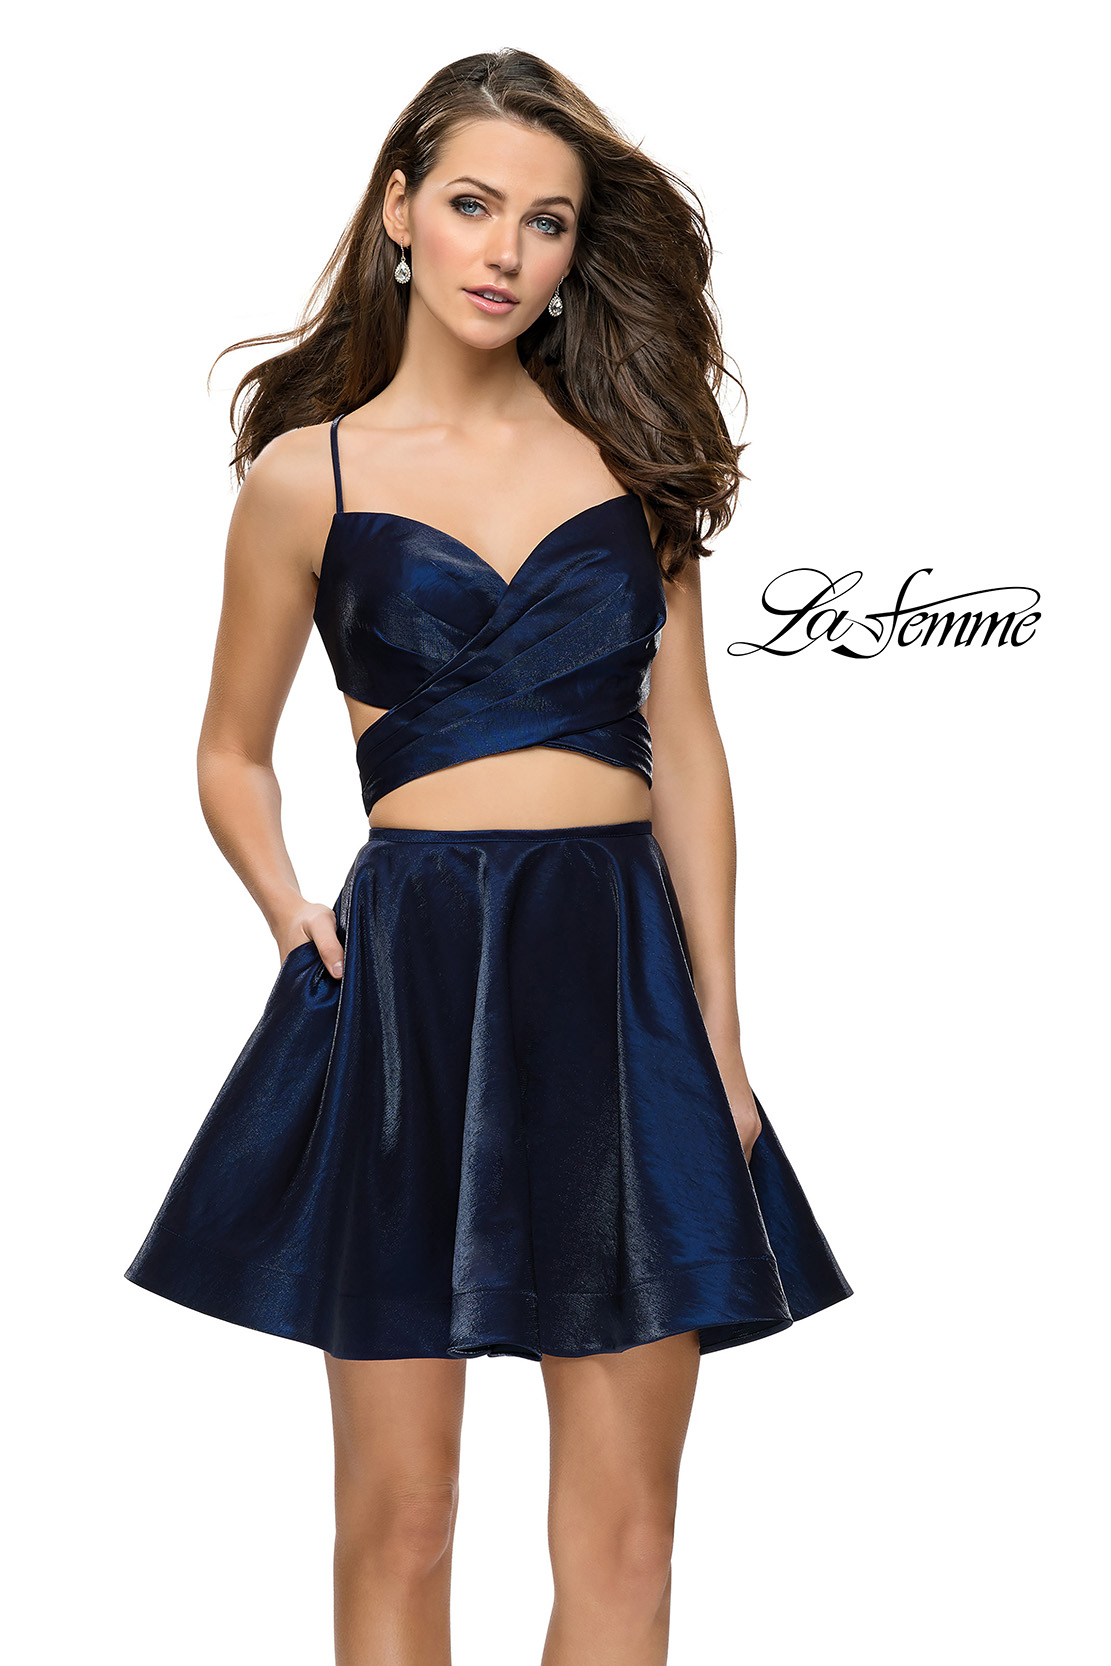 Navy two piece homecoming dress with shiny fabric and pockets